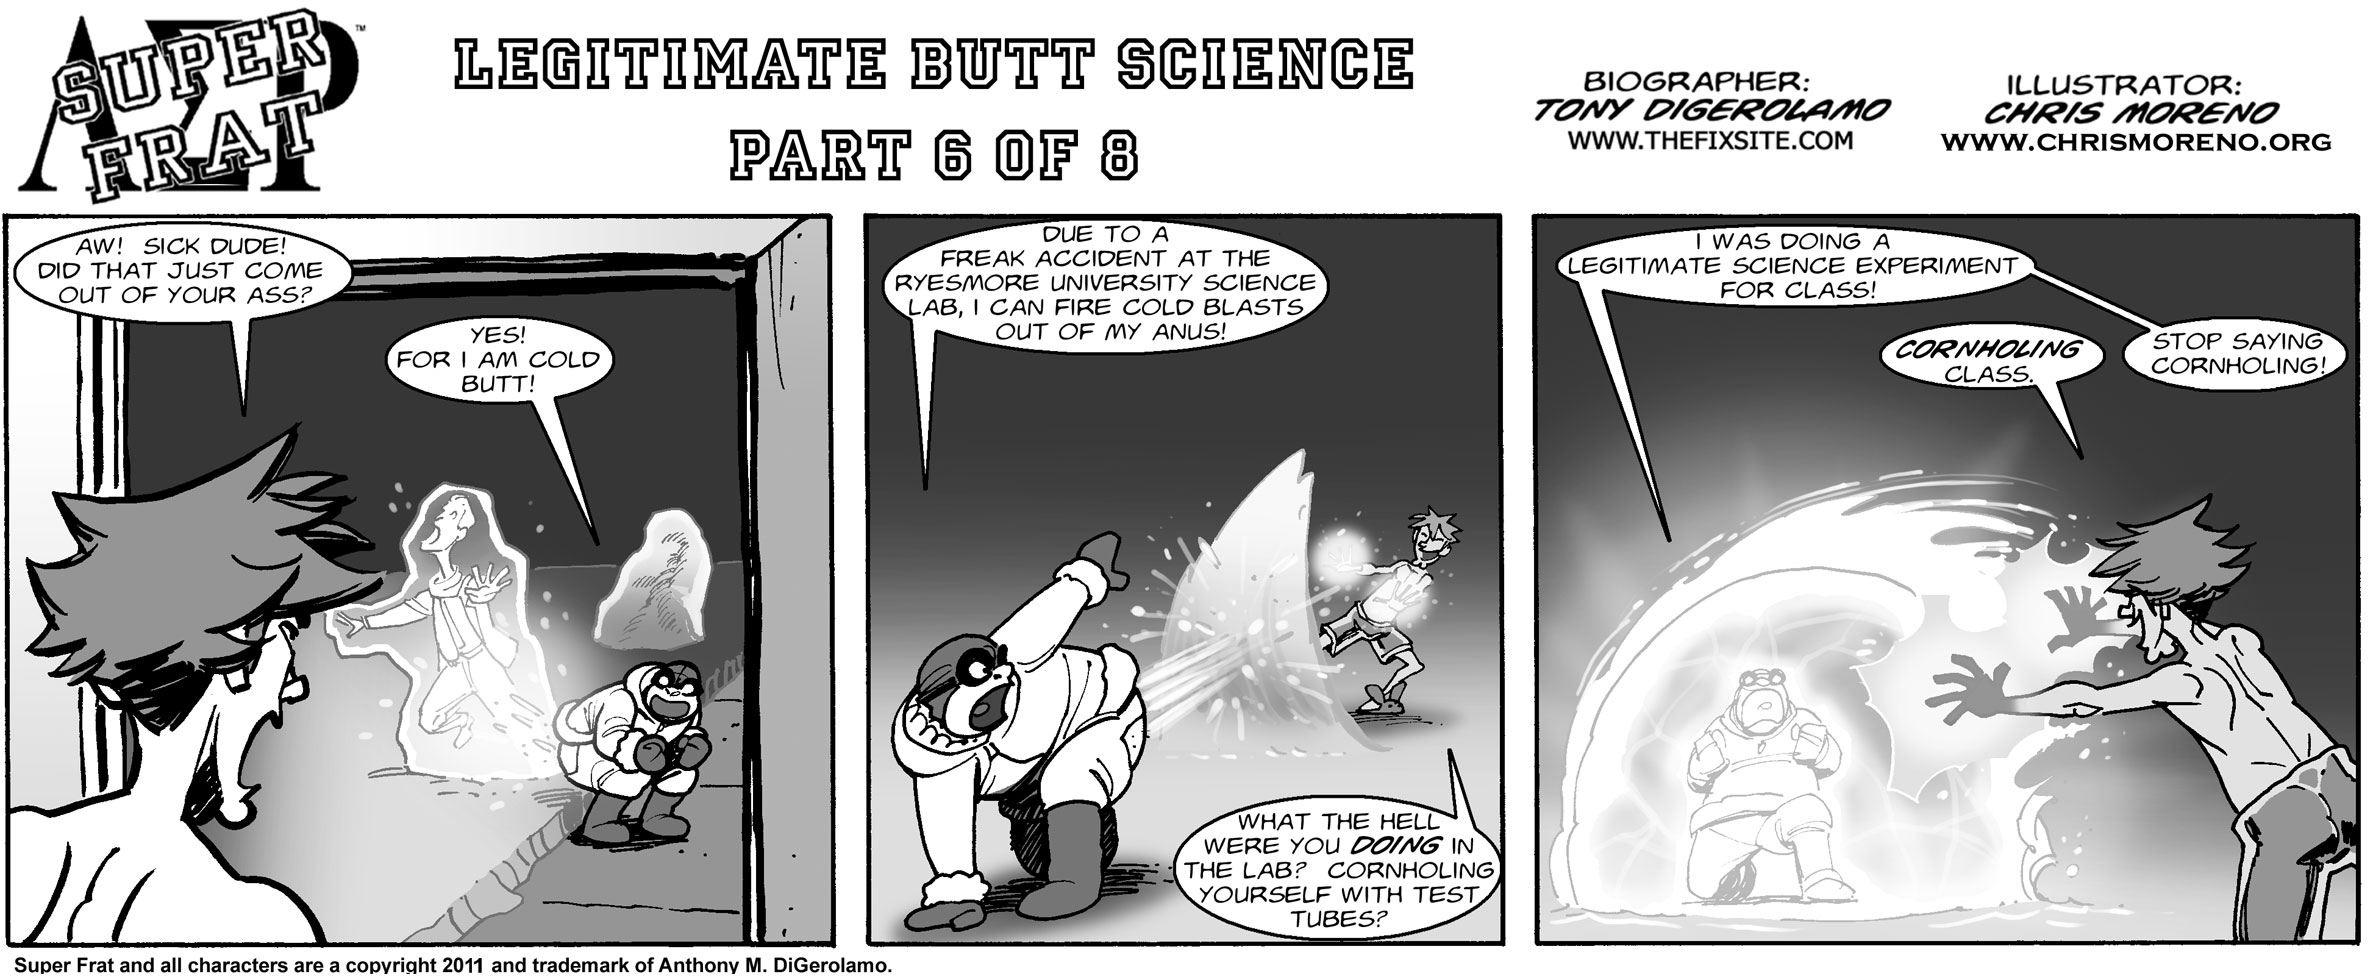 Legitimate Butt Science